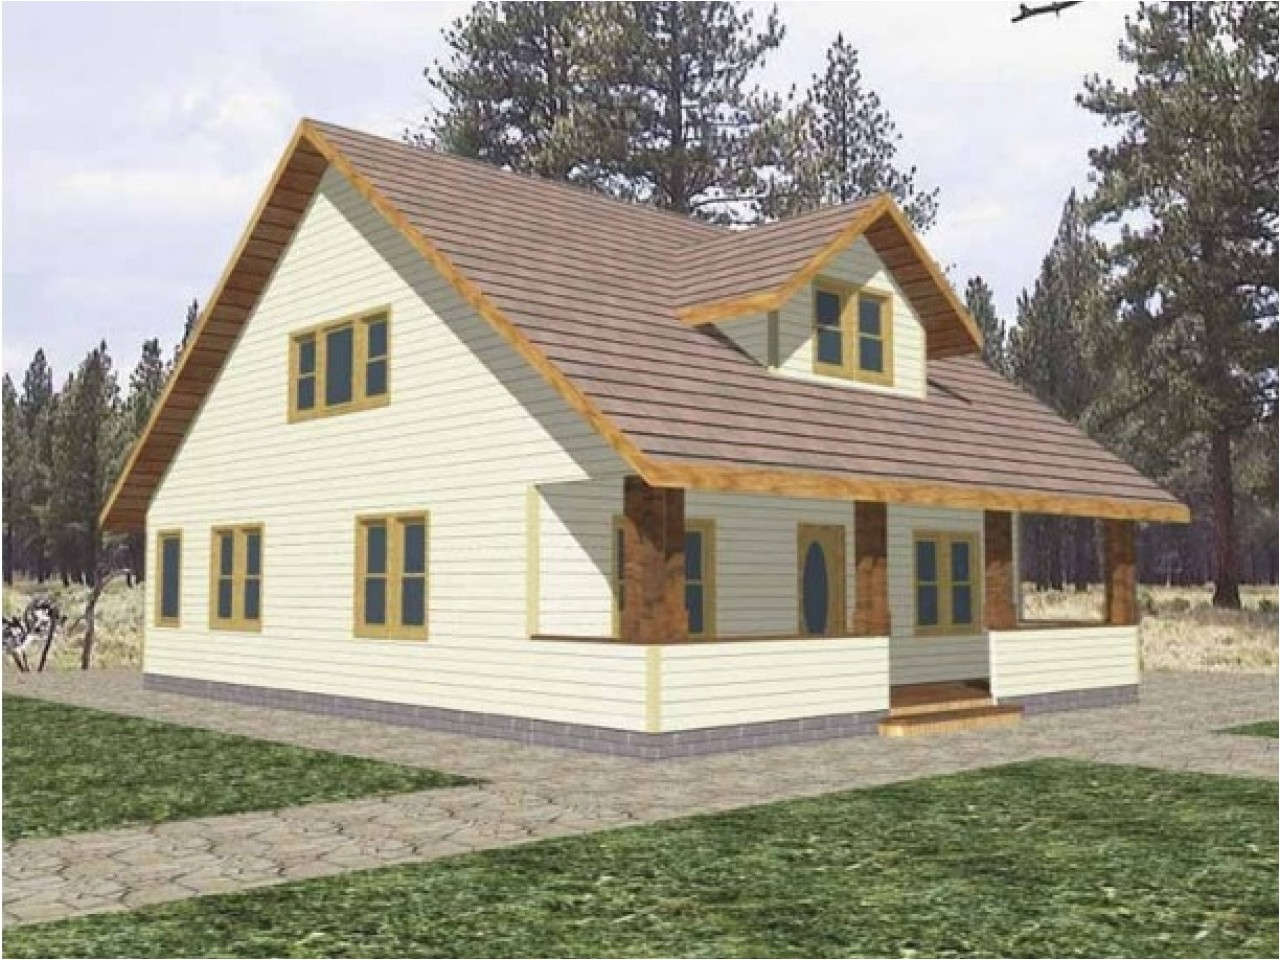 a73c82e6eeaf2dd3 old colonial floor plans old fashioned house plans bungalow